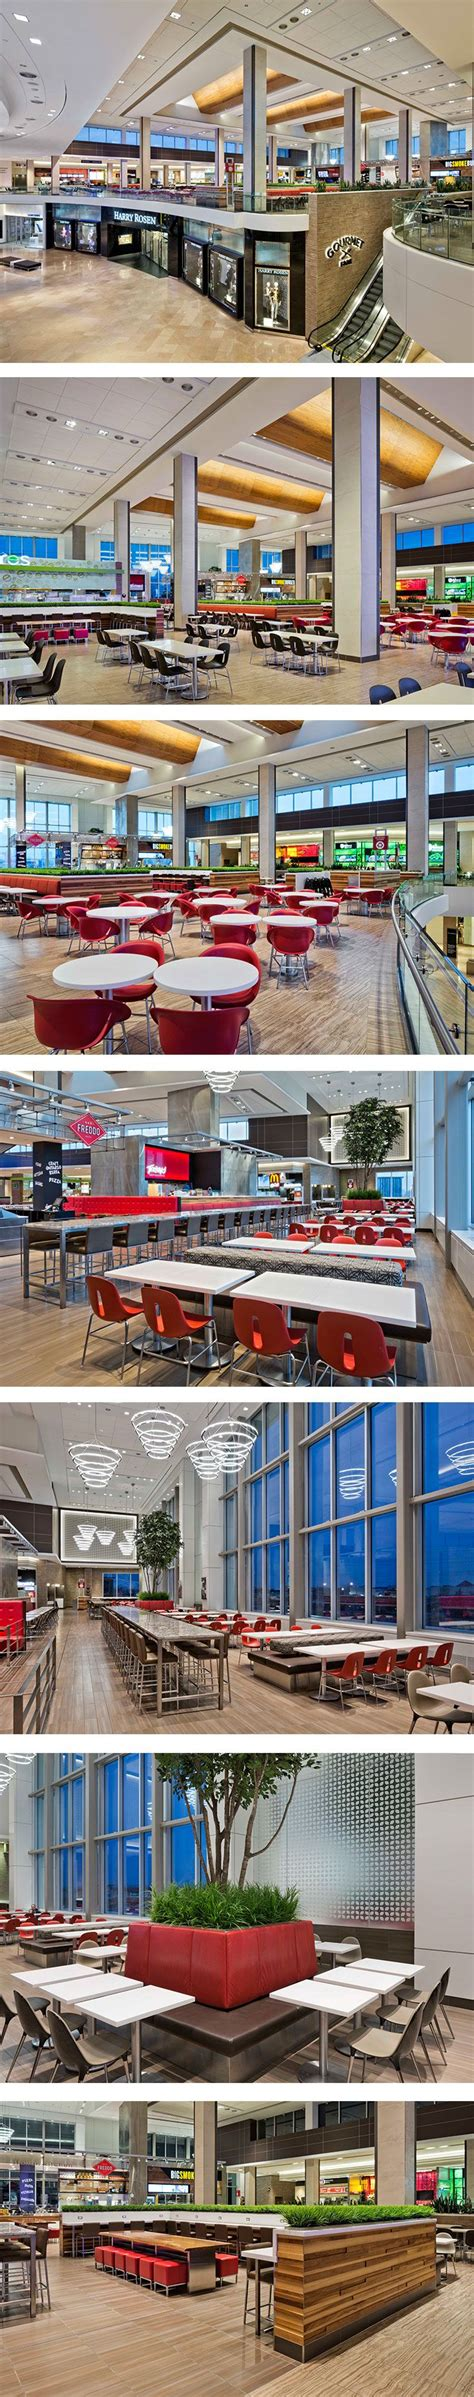 food court design pdf best 20 food court ideas on pinterest food court design